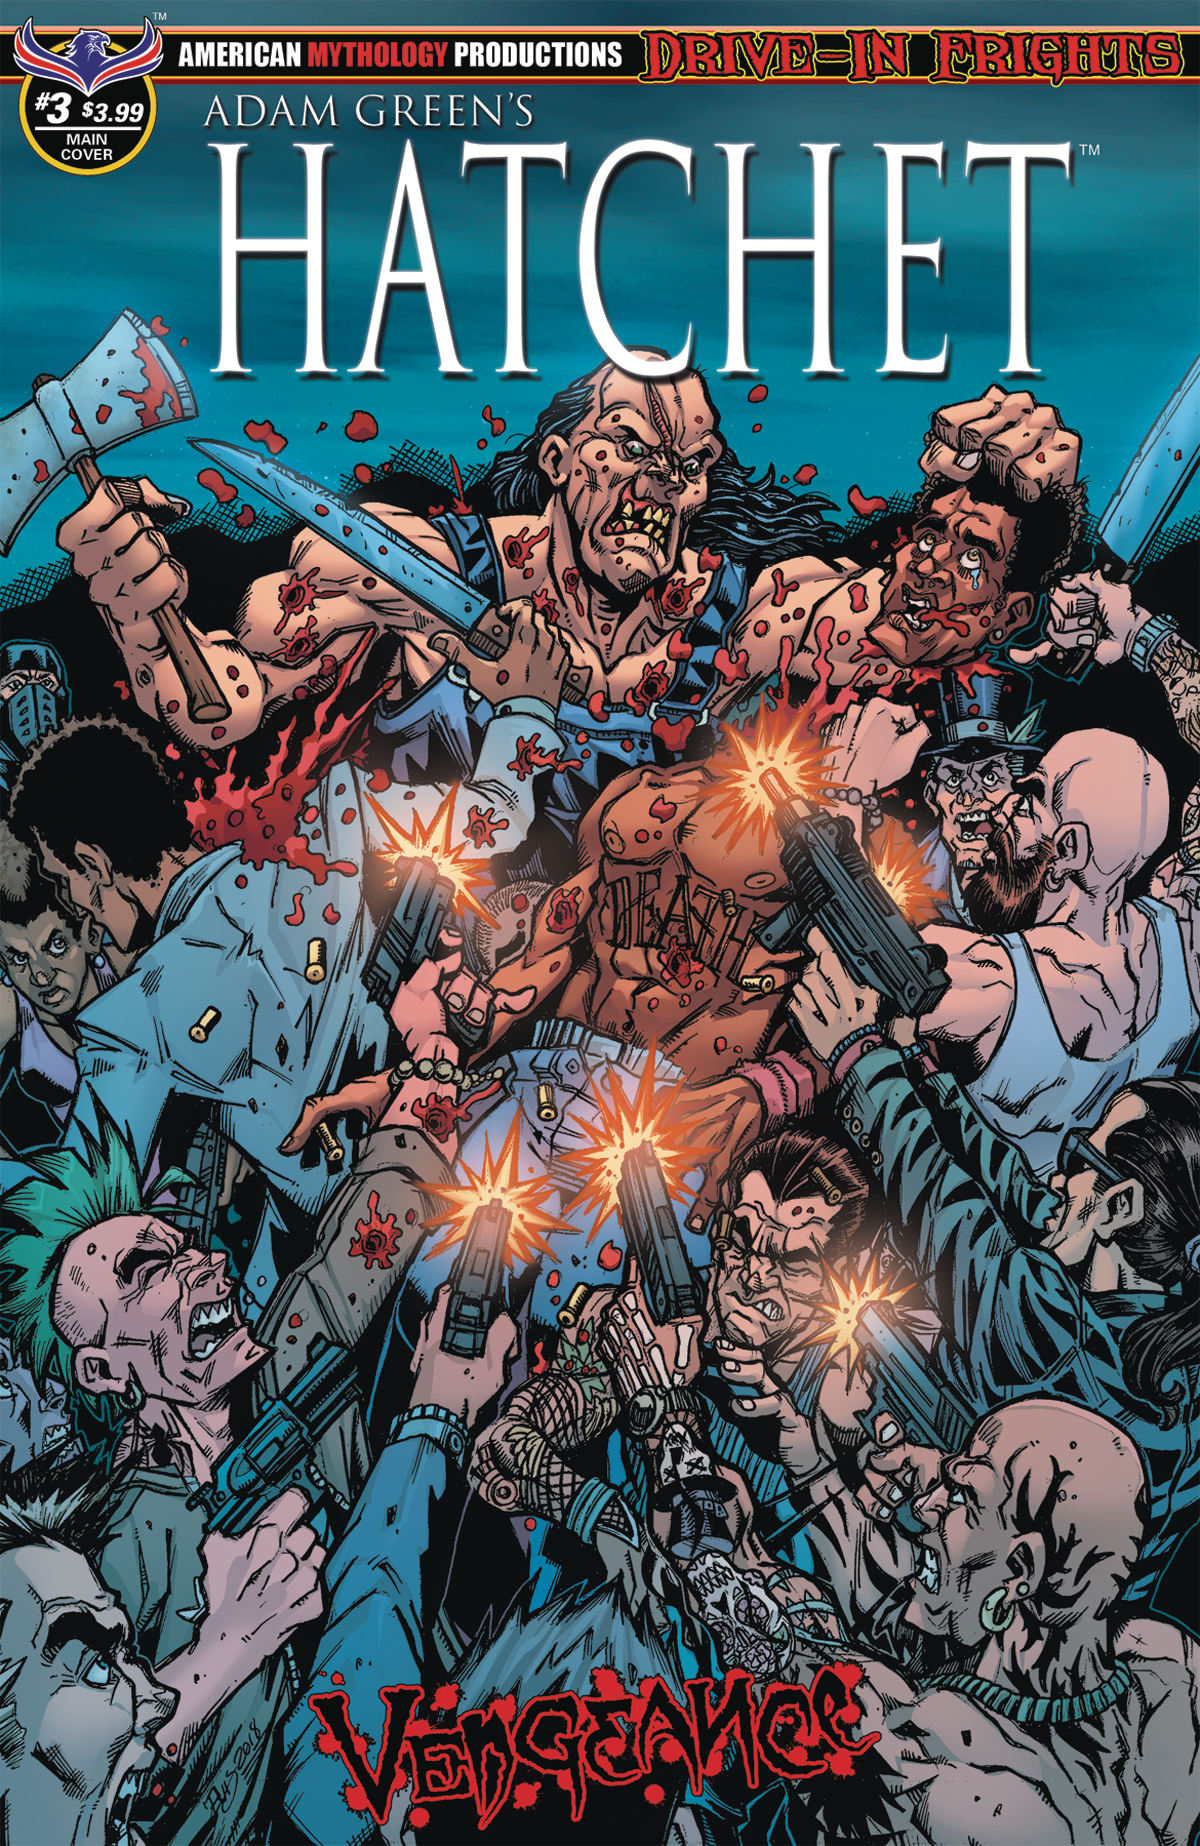 HATCHET VENGEANCE #3 SLAUGHTER CALZADA CVR (MR)